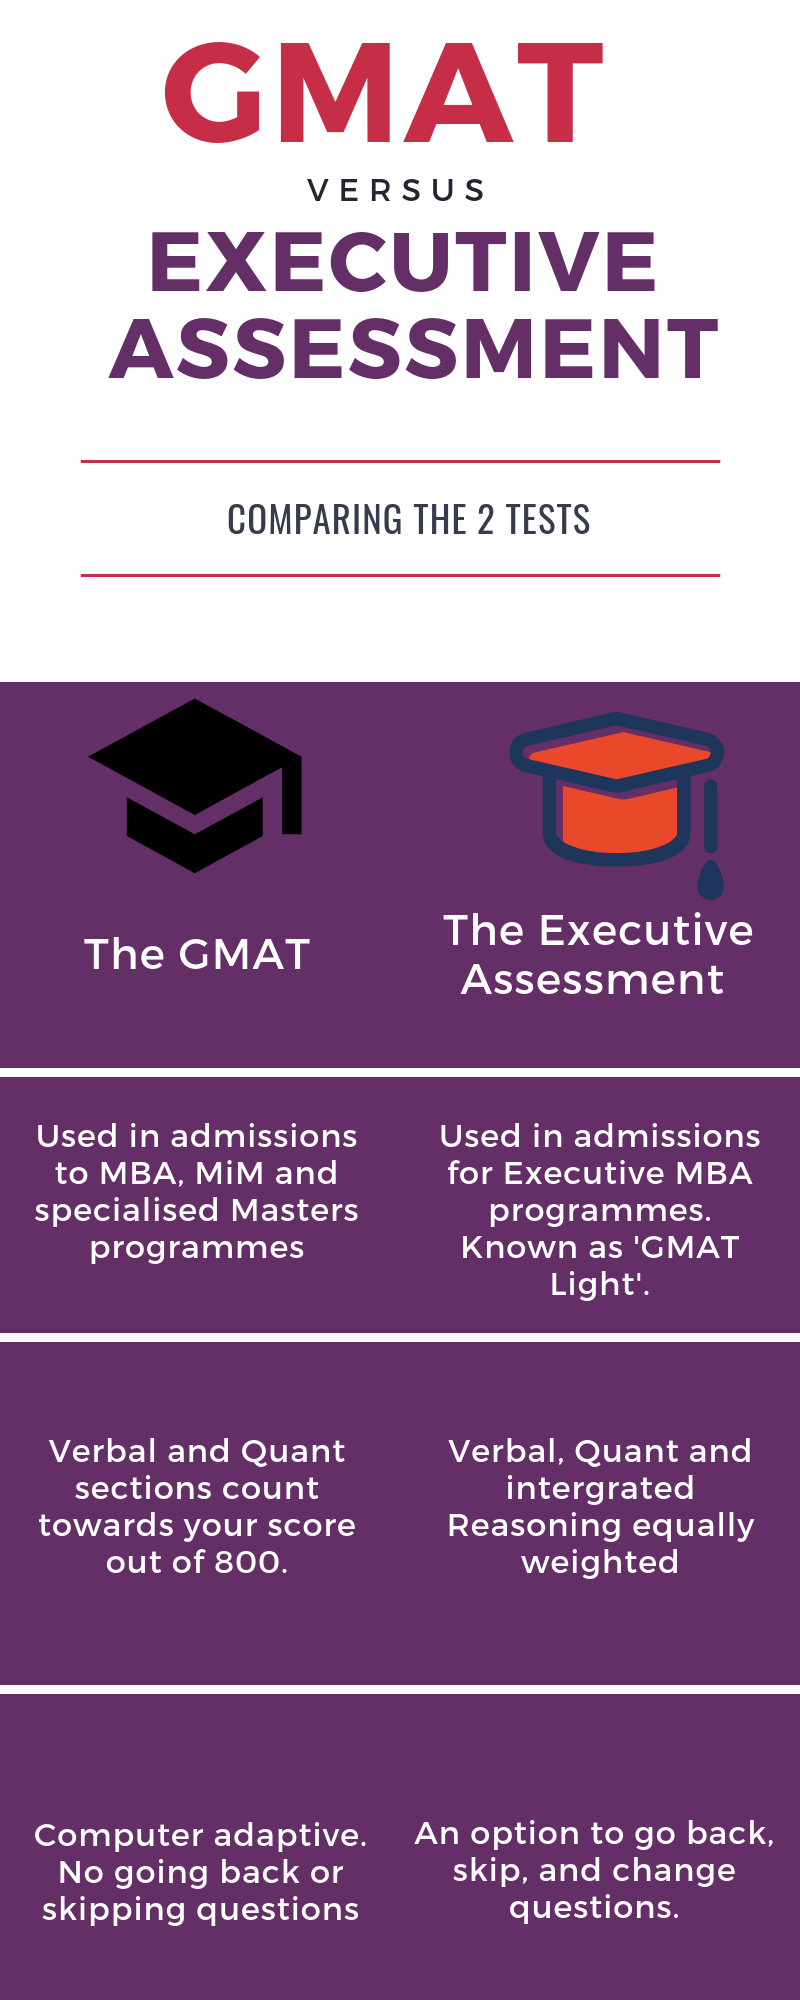 Executive Assessment vs. GMAT (2)